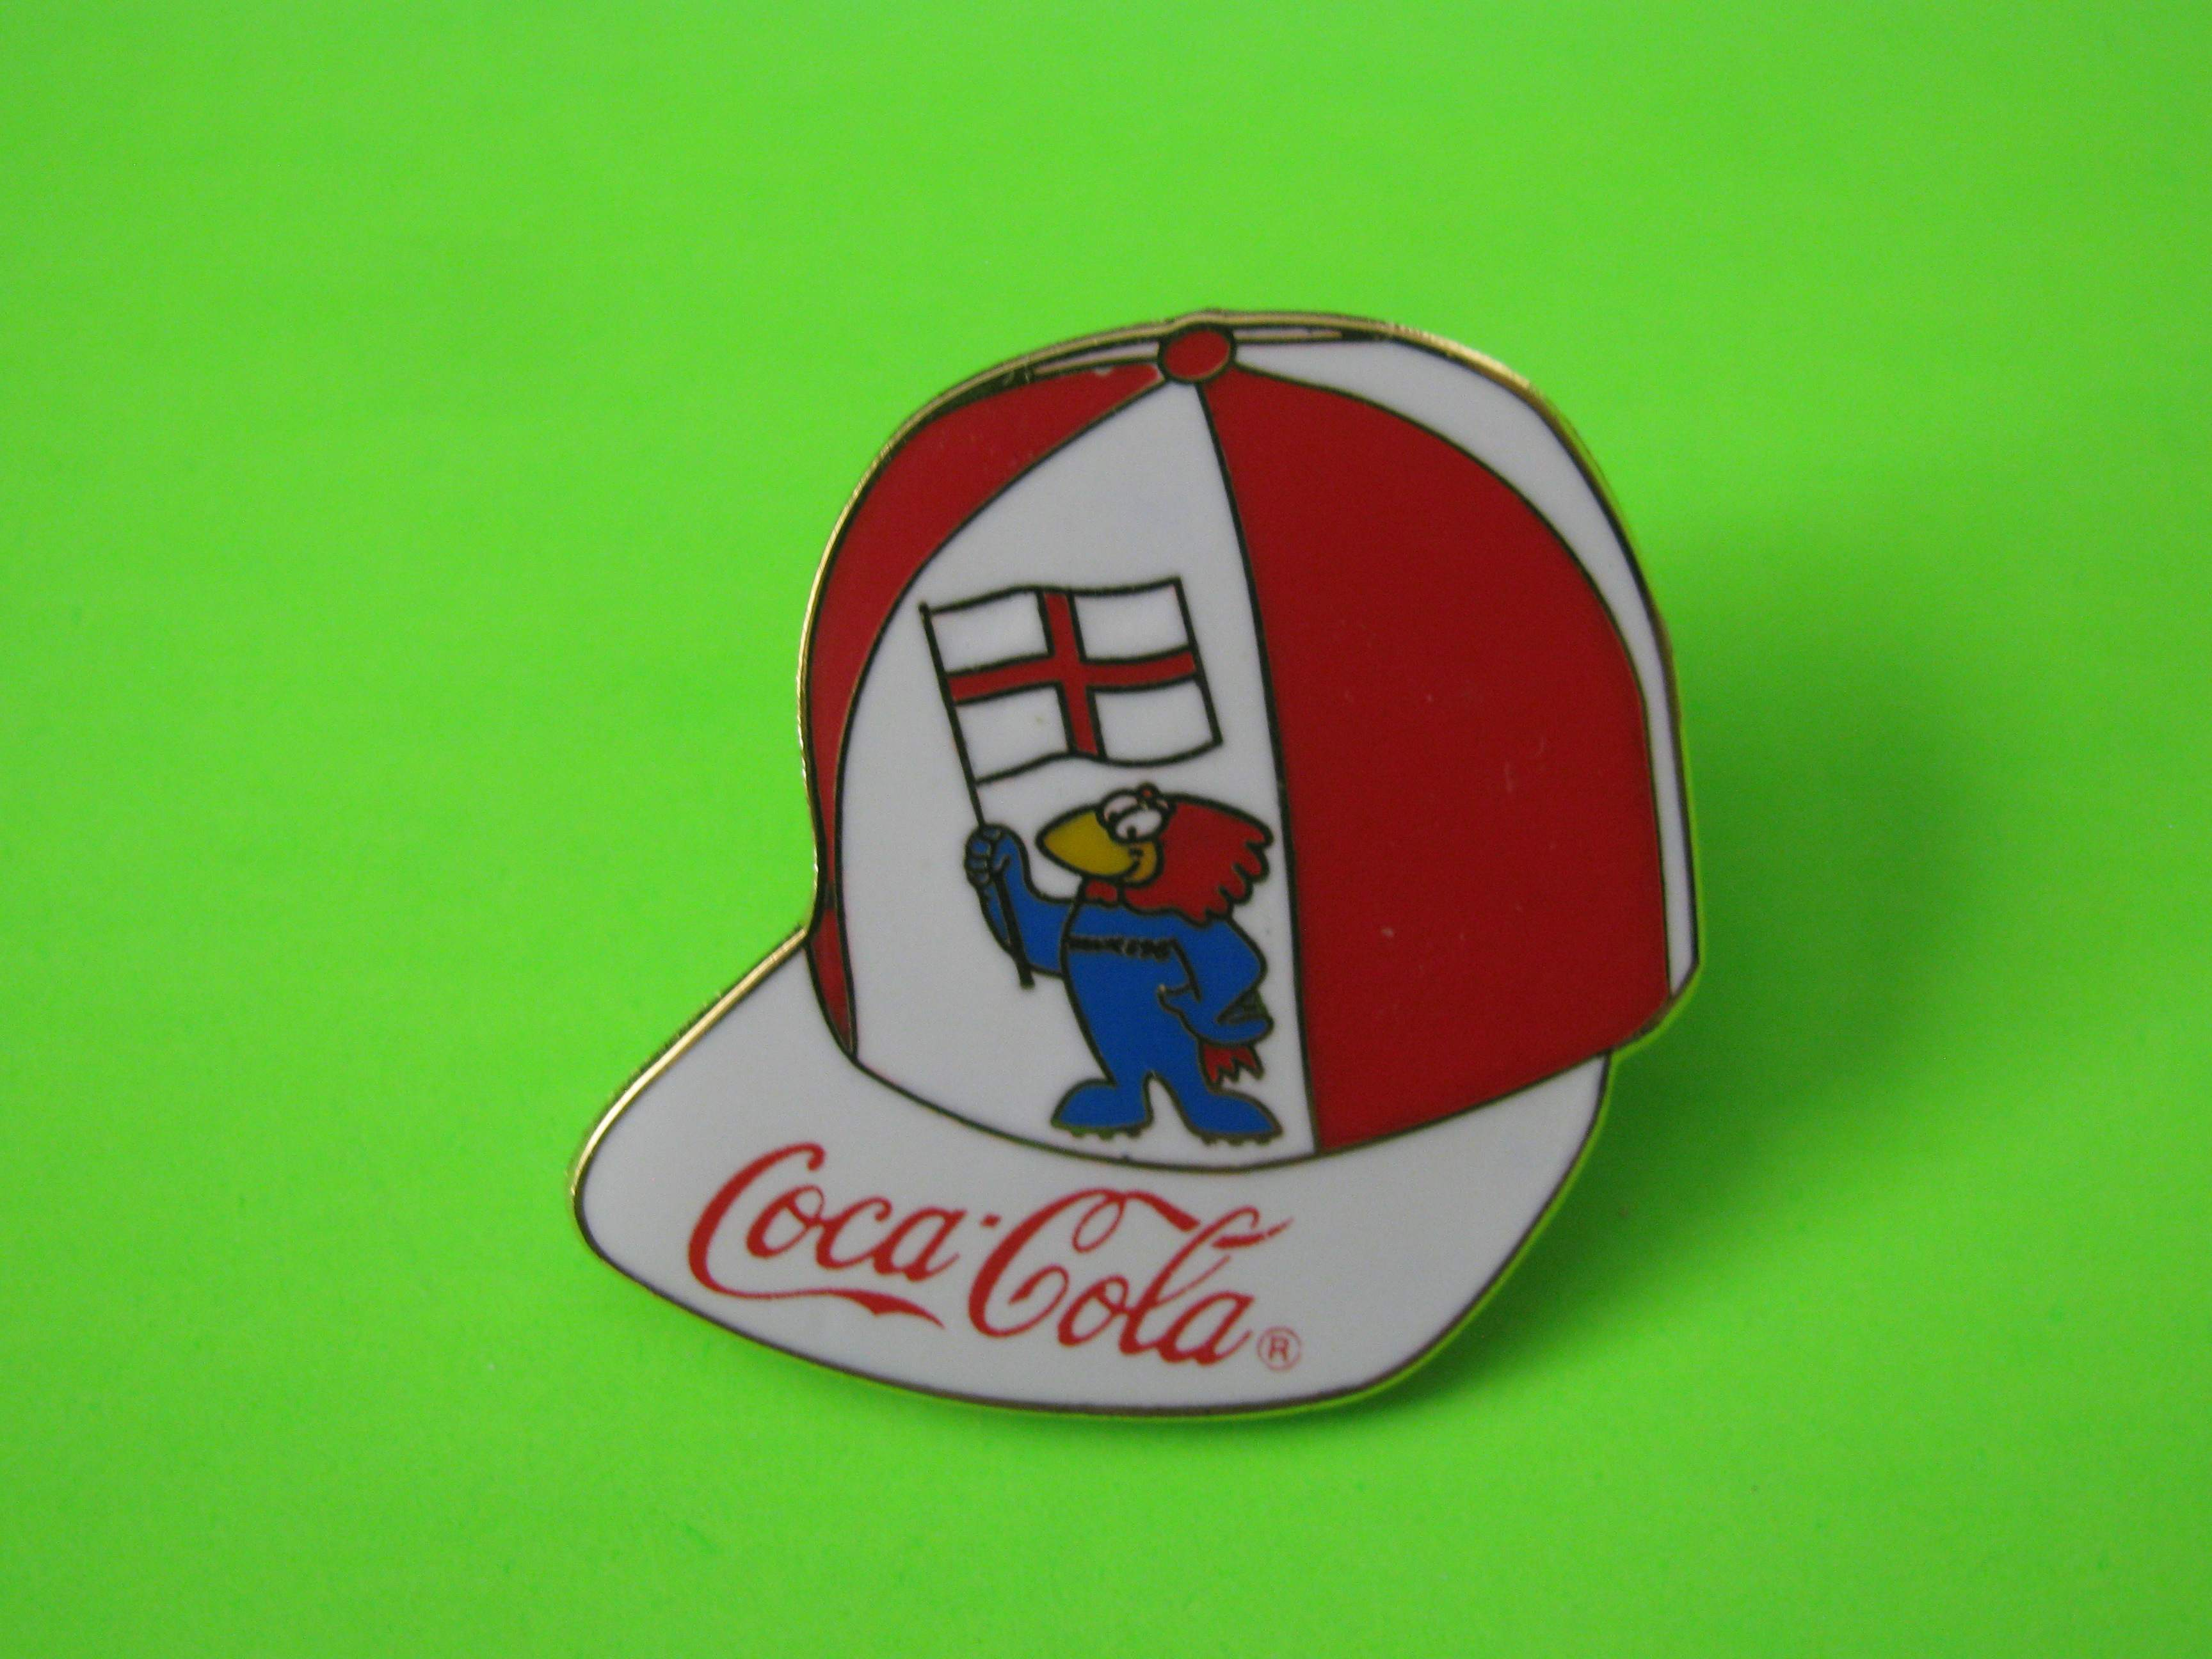 1995 Coca-Cola Promo Soccer Pin, London England, Ball Cap Shaped, Metal with Butterfly Clutch